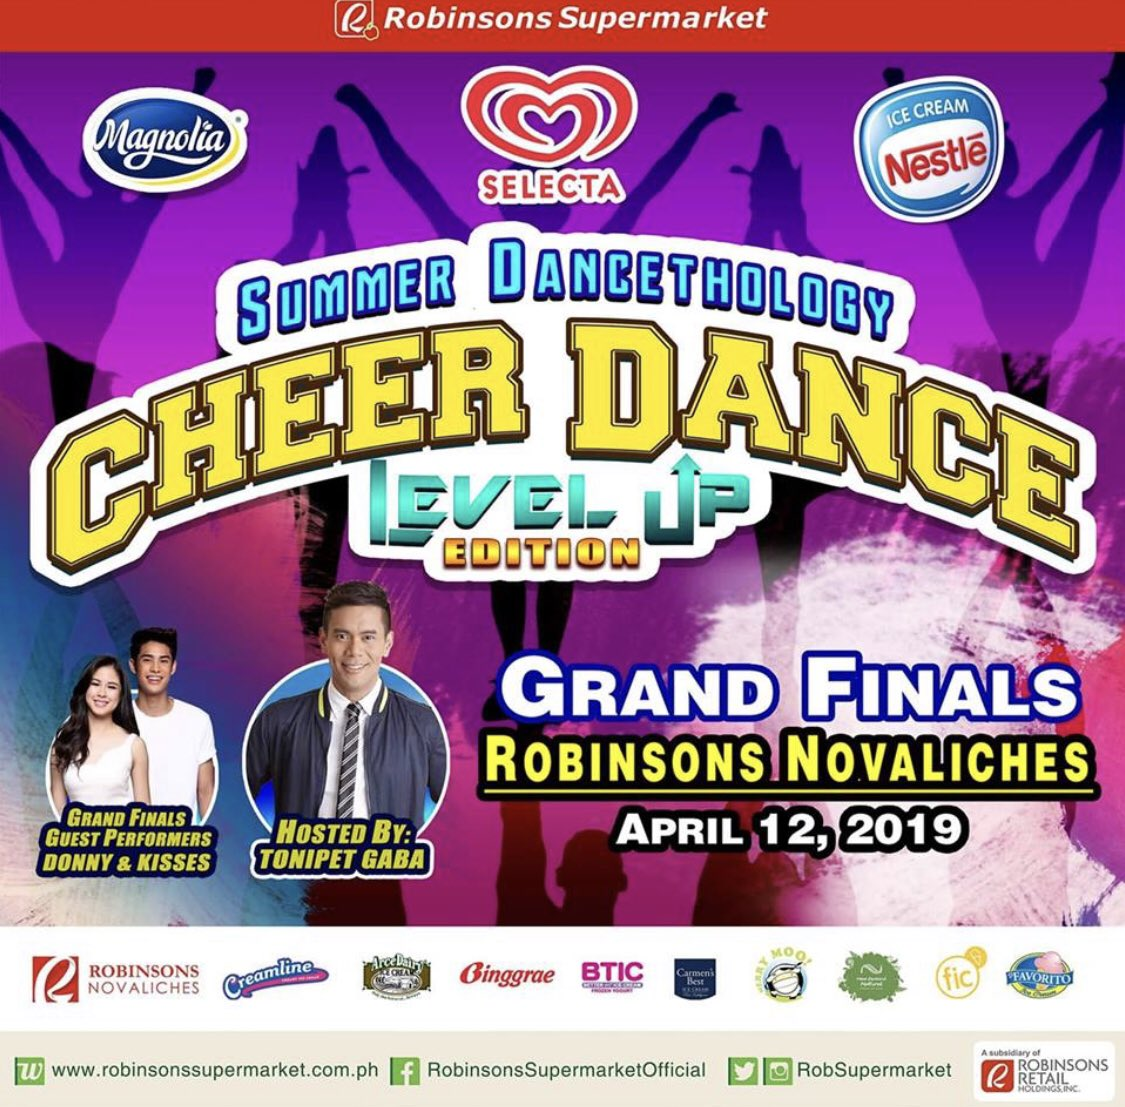 Catch #DonKiss as guest performers at Robinsons Novaliches on Friday, 12th of April 2019 for the Summer Dancethology Cheer Dance Level Up Edition.  If you want to join and represent our fam, DM @DKATeamEVENTS! See you guys there. 💖  @donnypangilinan @KissesDelavin